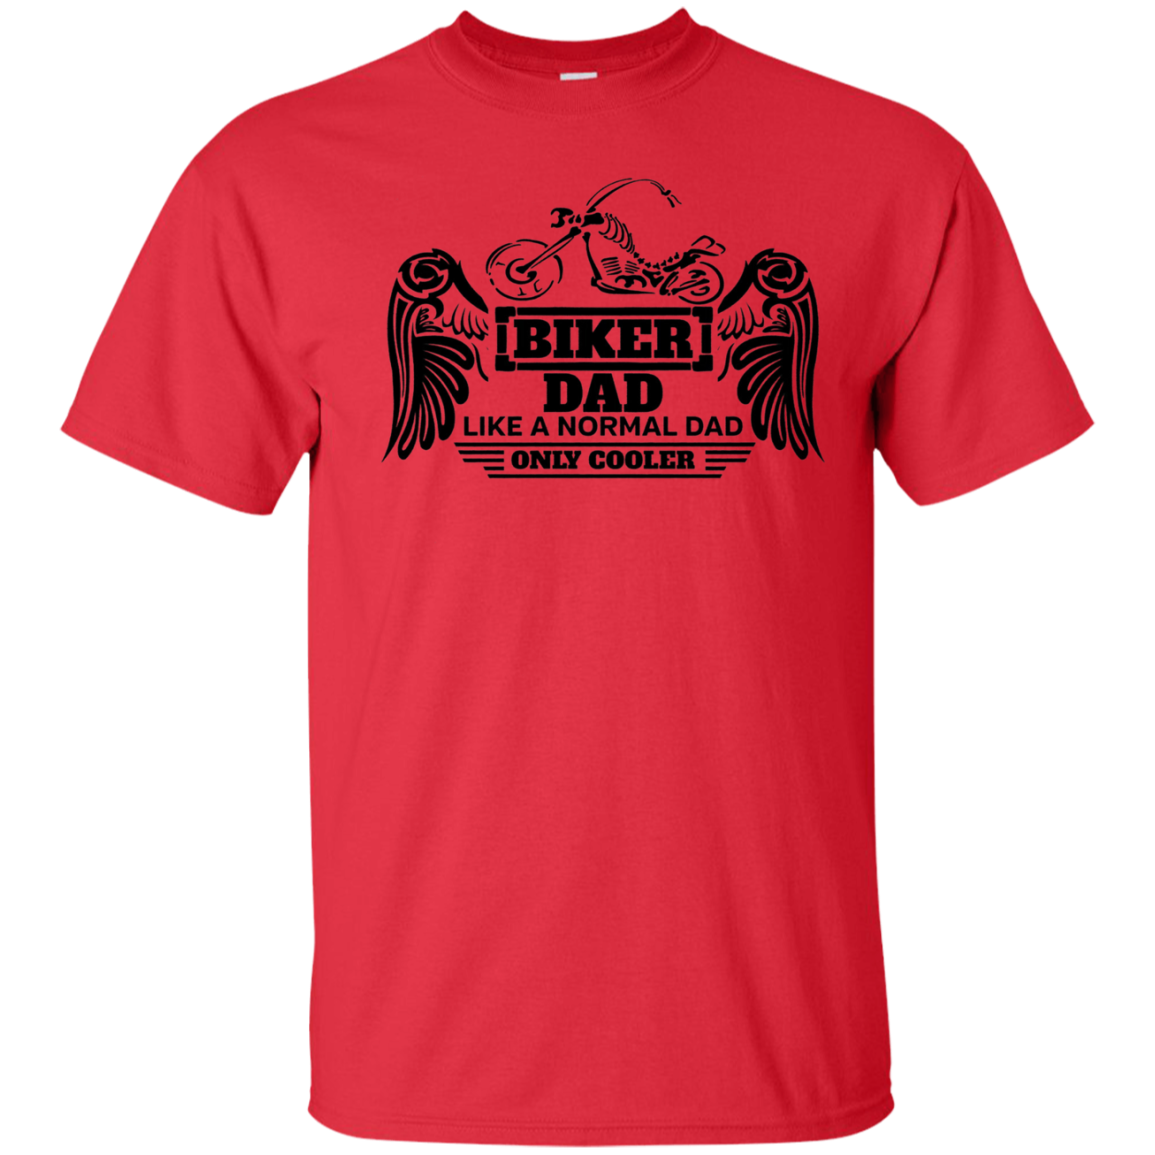 Mens Biker Dad T-shirt - Shirt for Motorcycle Fathers